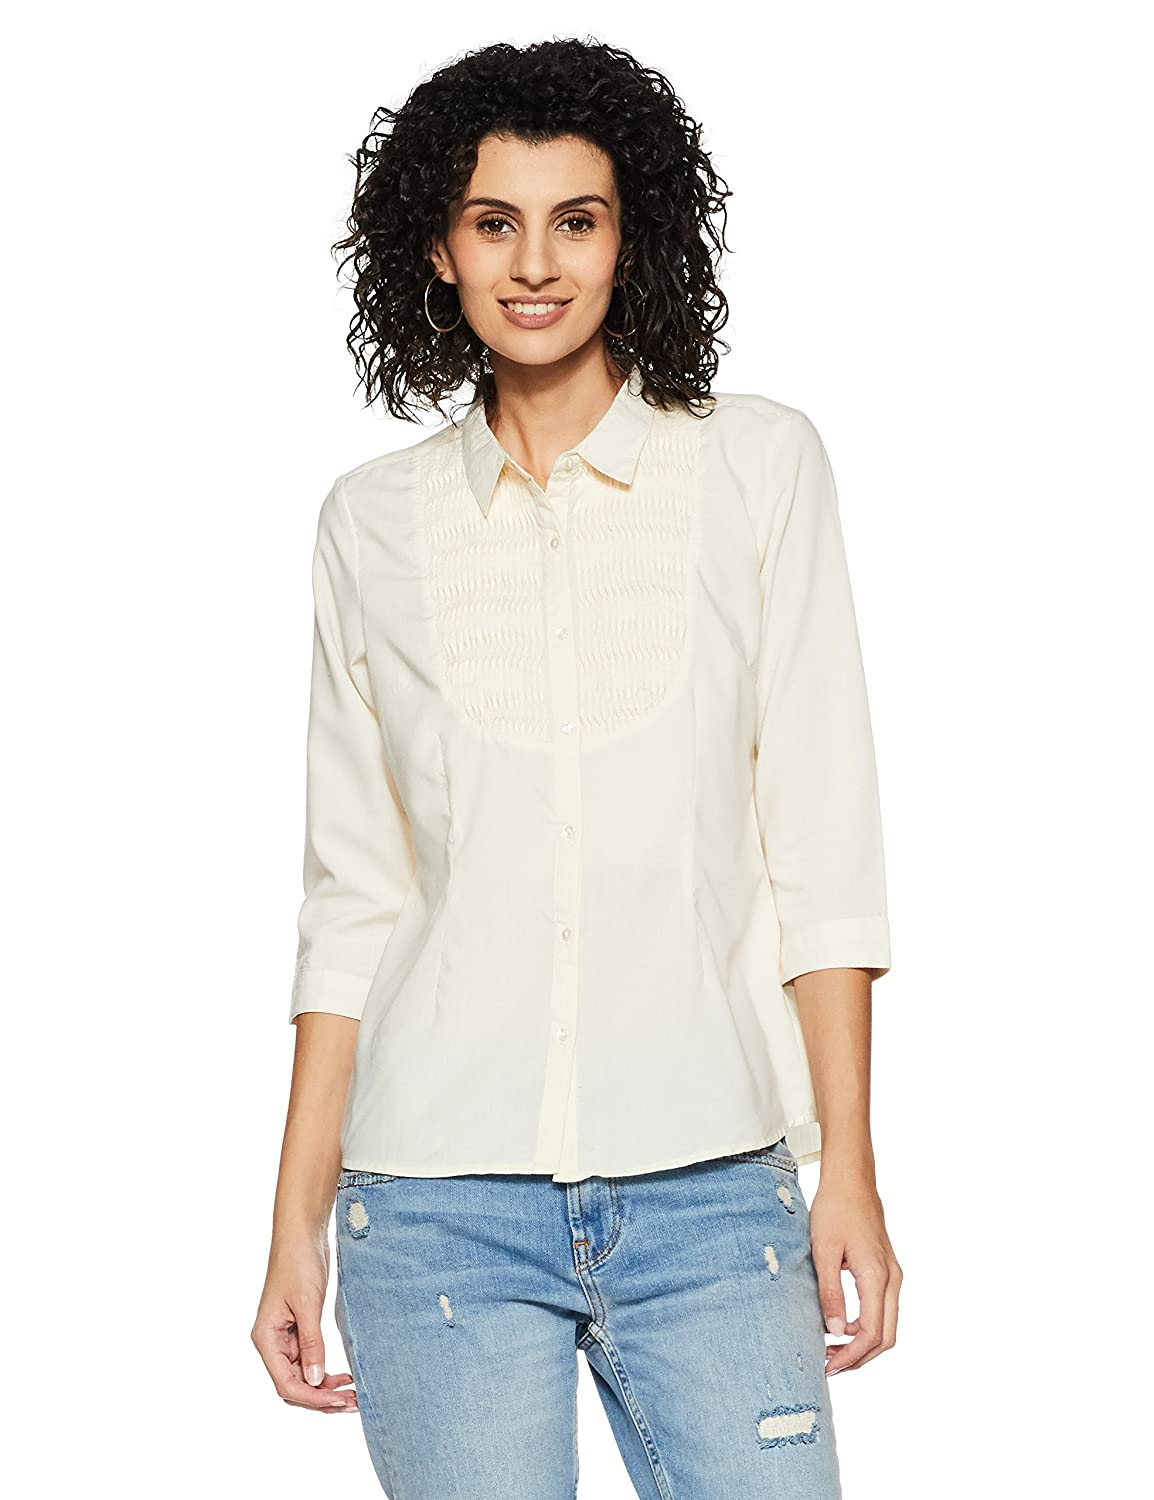 Women's Button Down Shirt new look